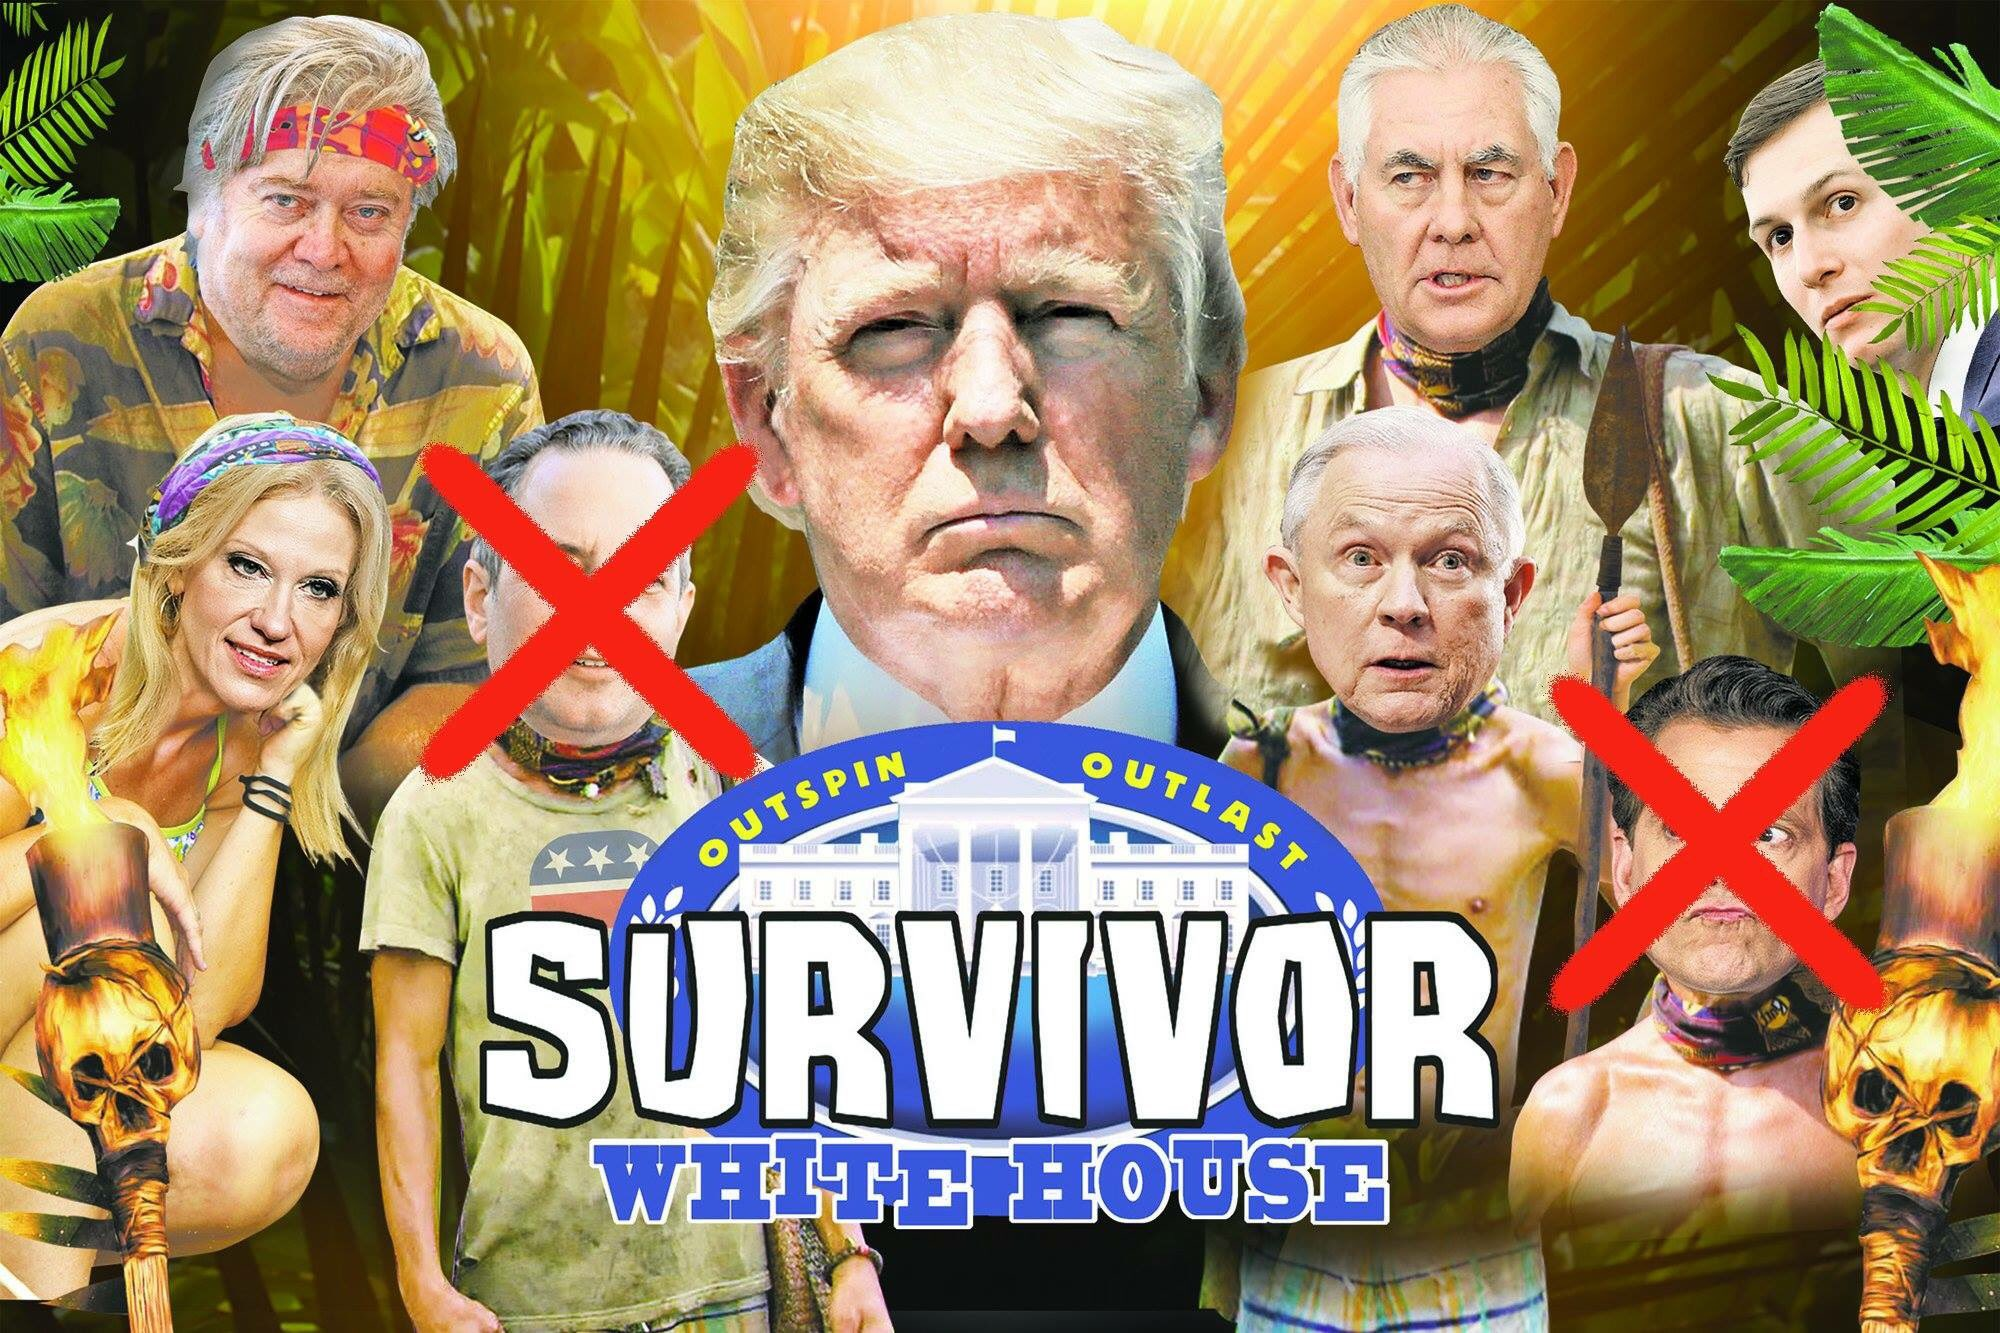 Outspin. Outlast. Presenting.... Survivor: White House